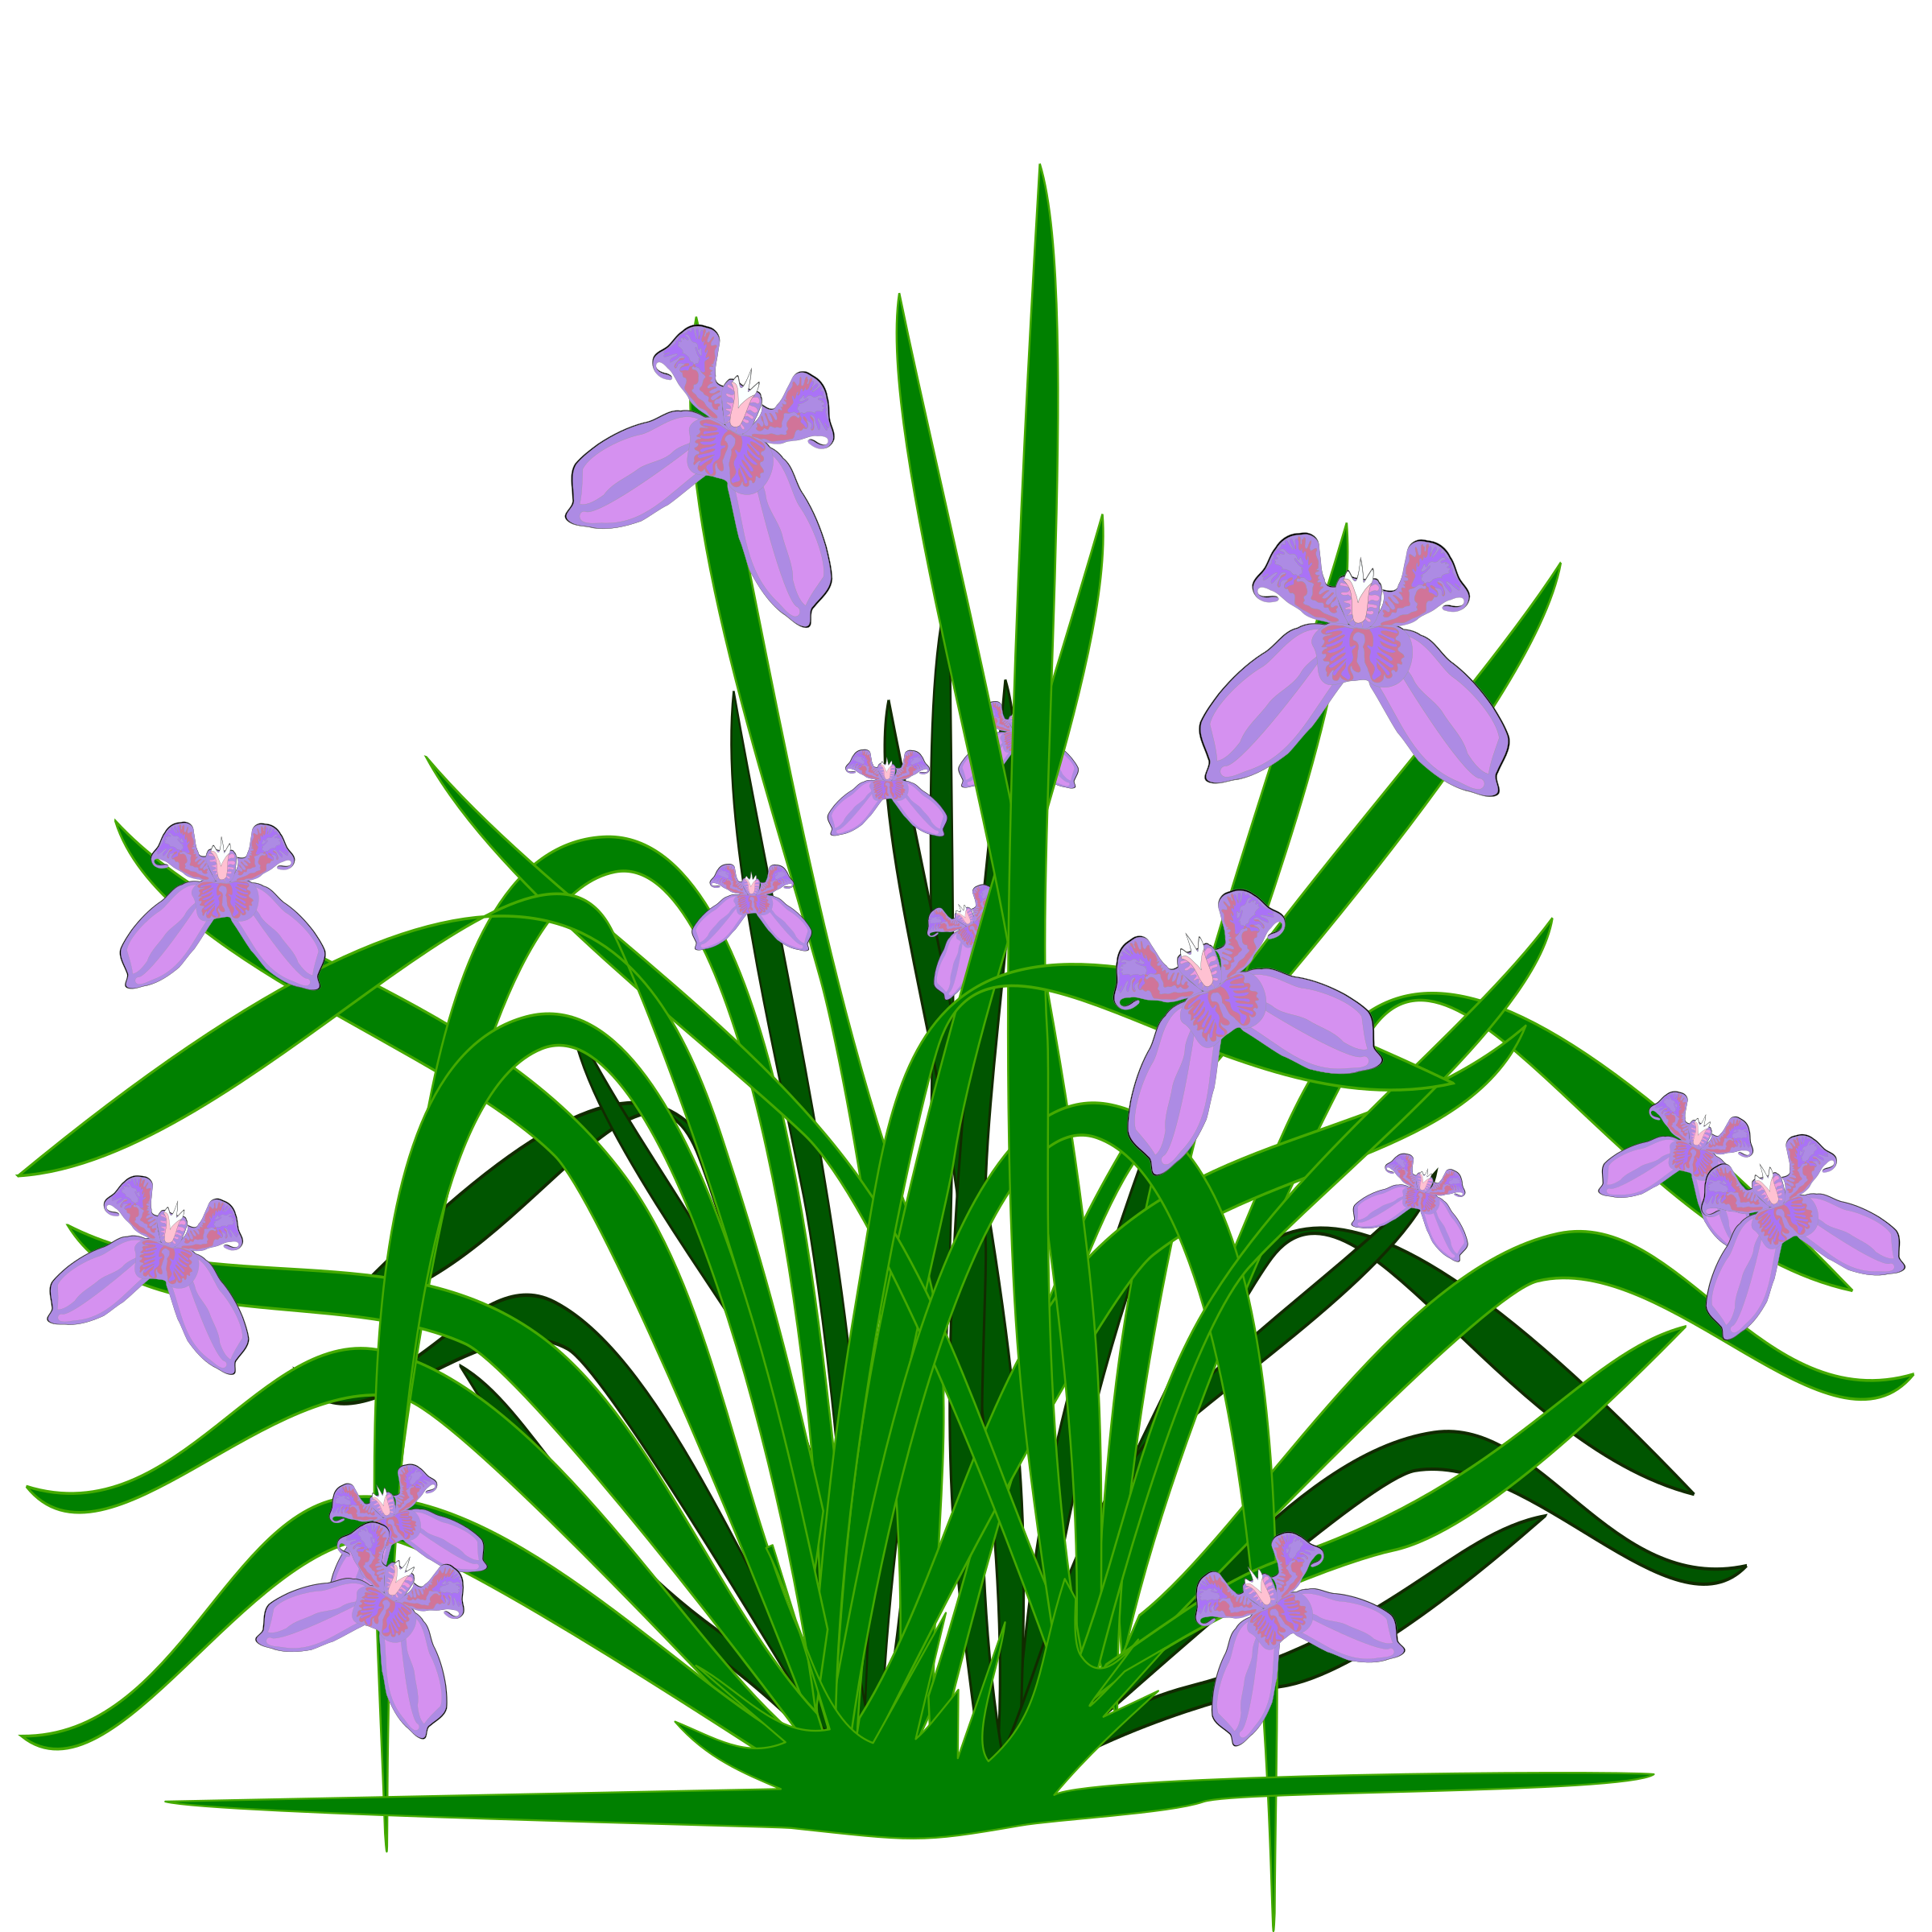 Plants clipart free clip art freeuse library Free Plant Pictures | Free download best Free Plant Pictures ... clip art freeuse library